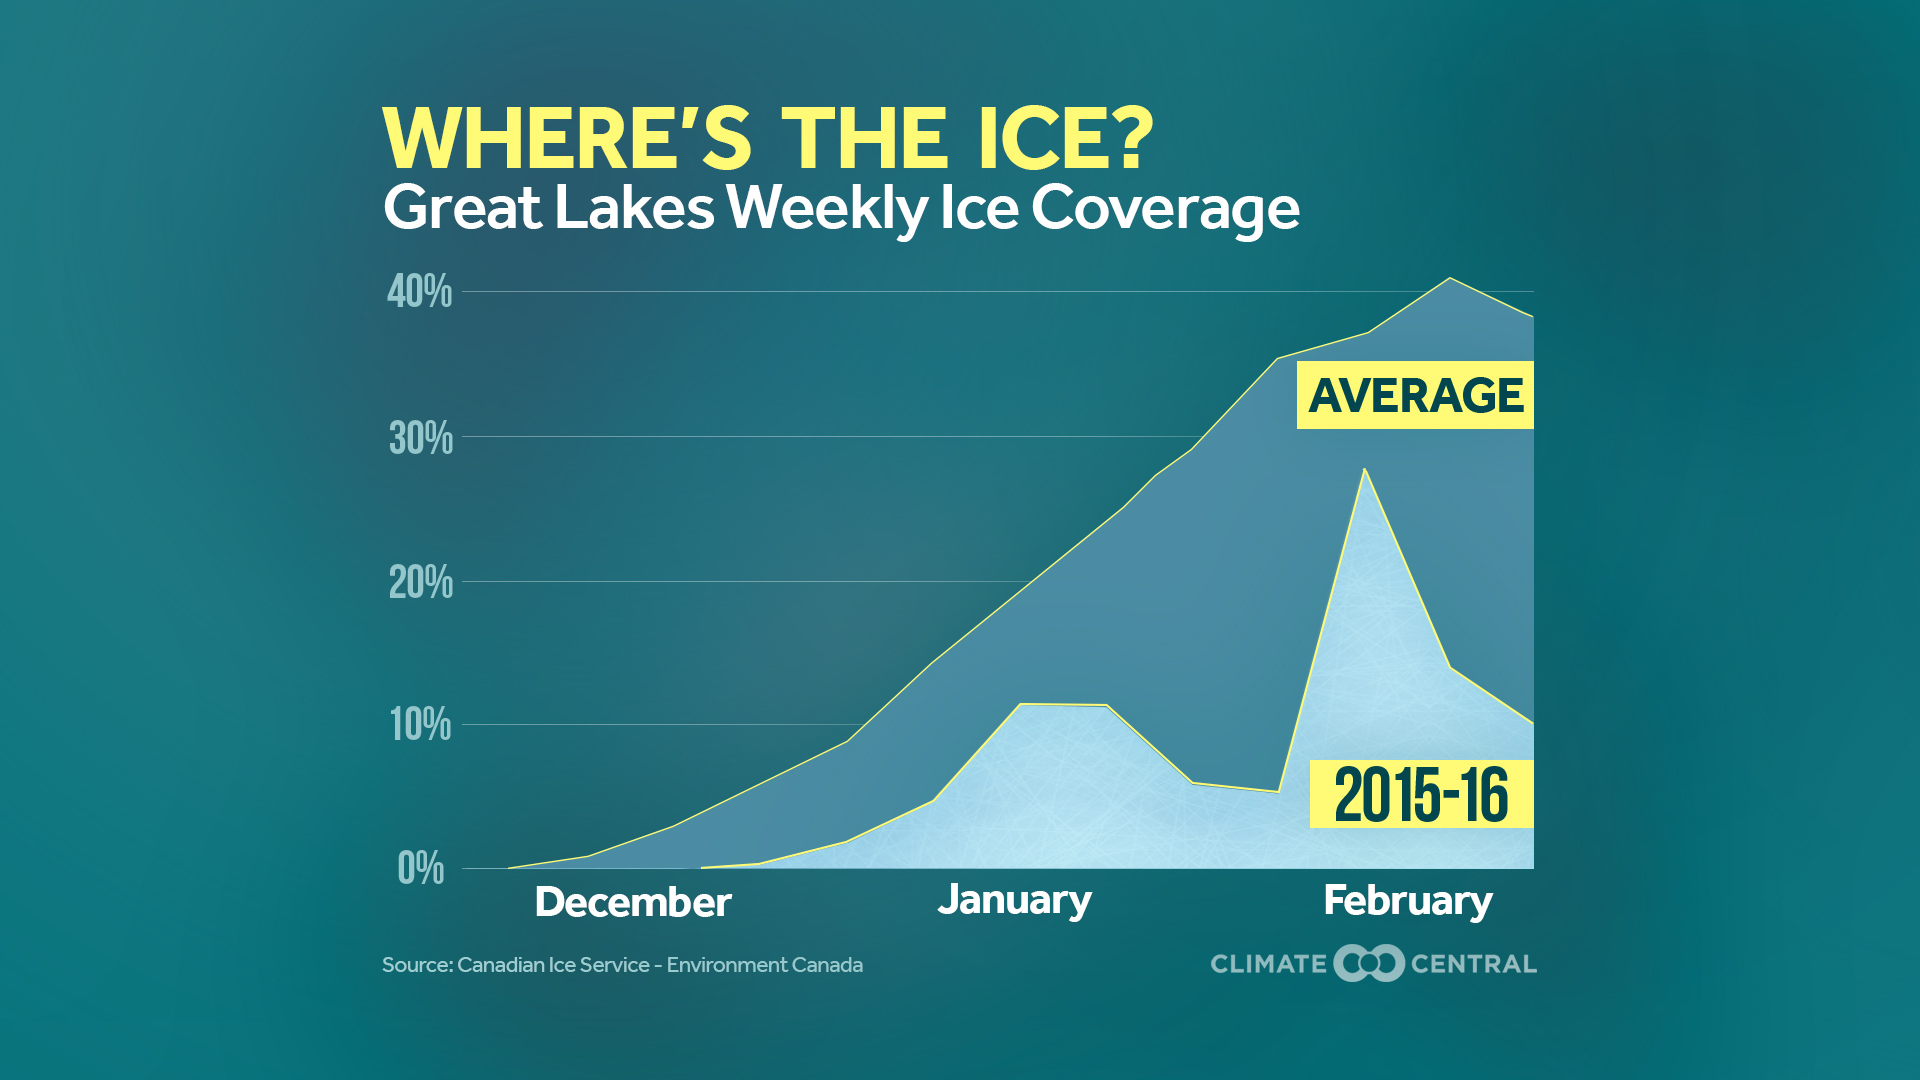 Where's the Ice on the Great Lakes?